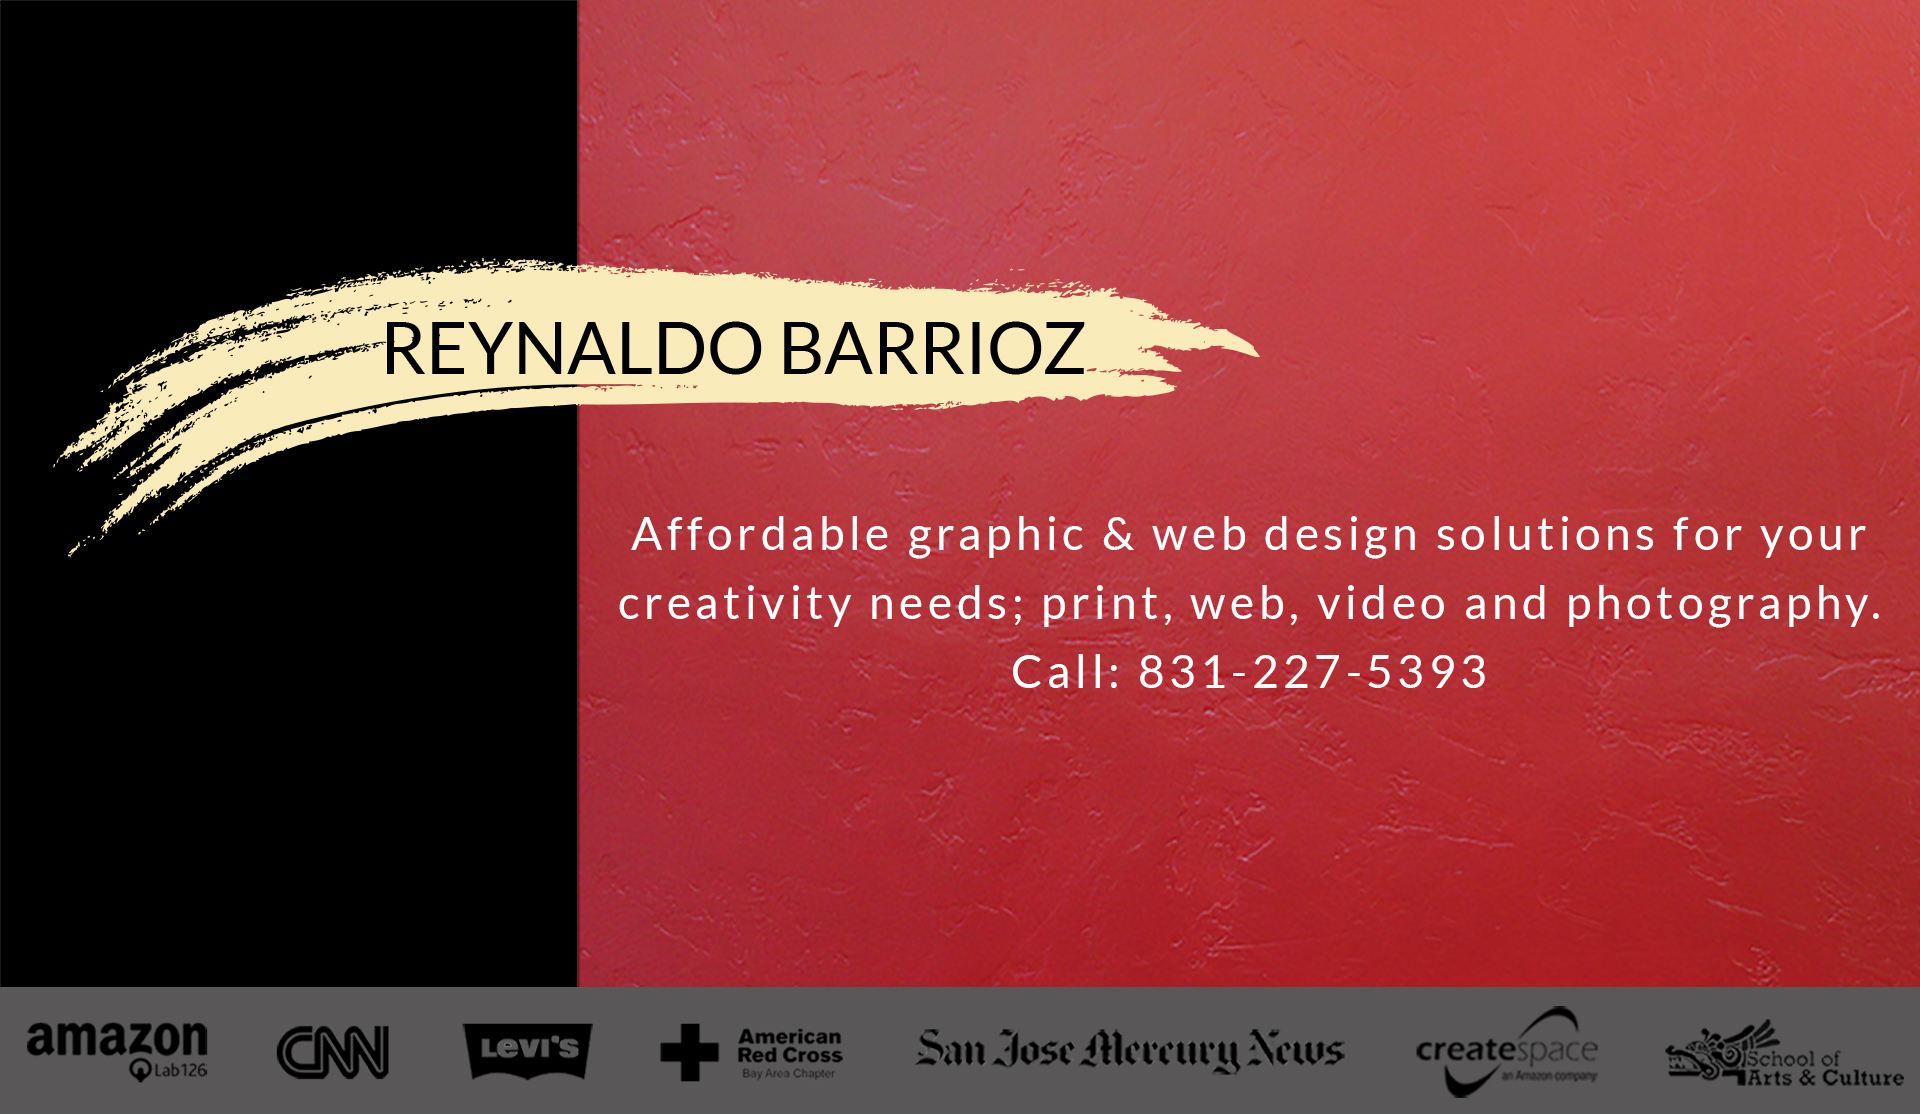 Hi, I'm Reynaldo Barrioz. I can help your company with affordable solutions for your creativity needs; video, print and online.